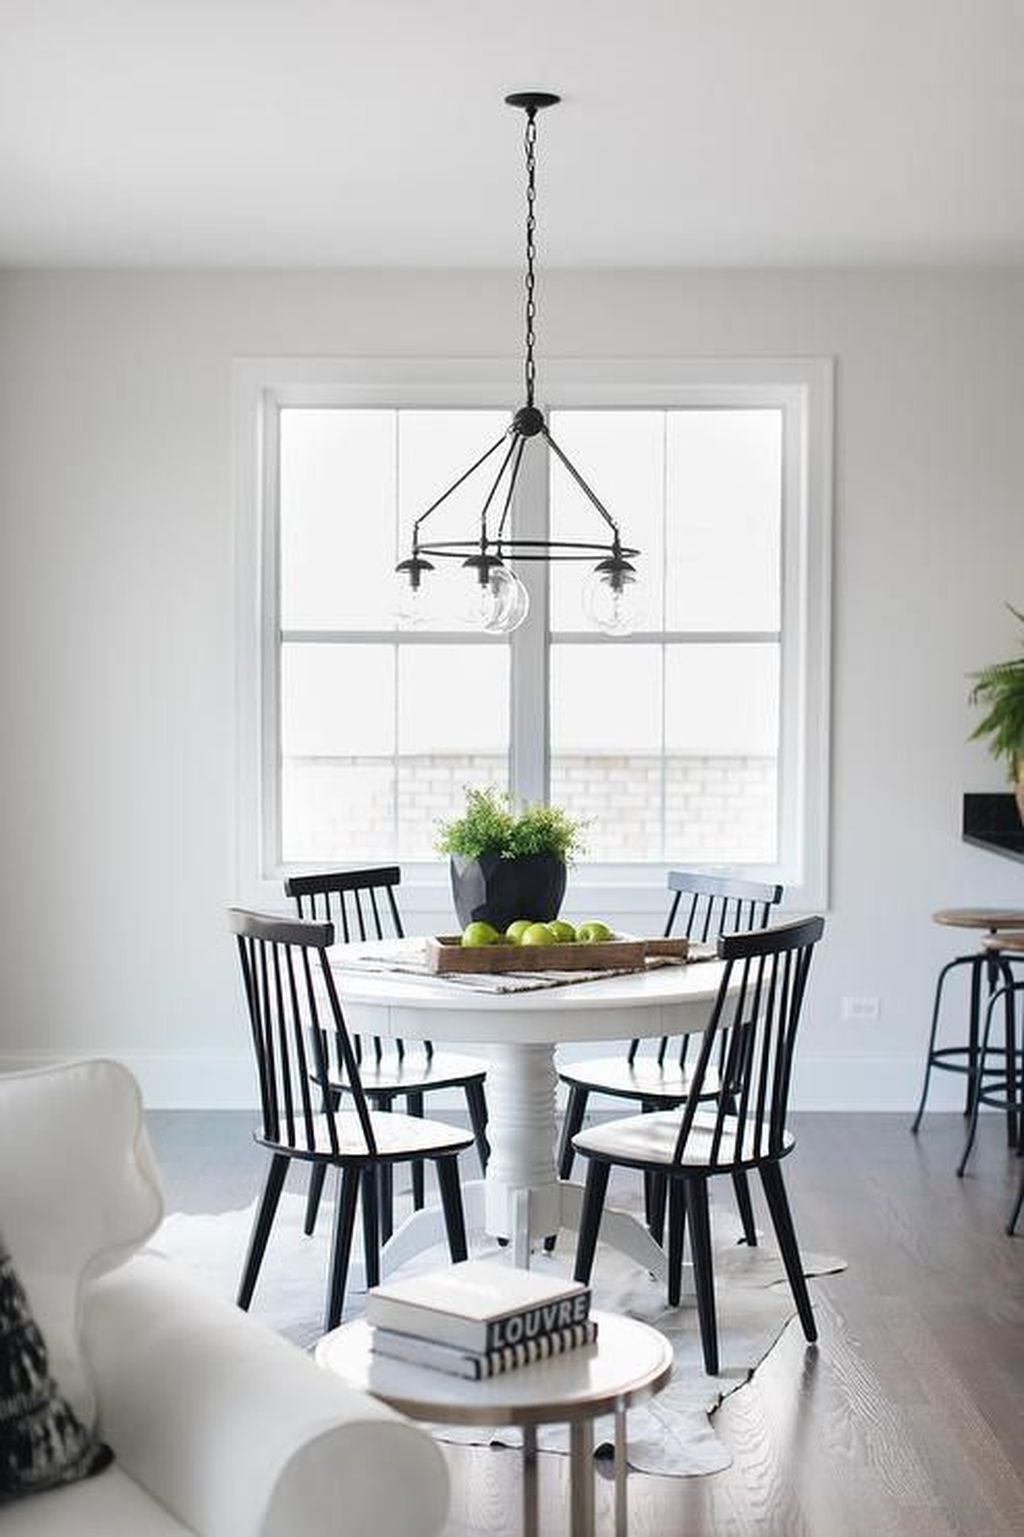 44 The Best Round Pedestal Dining Table Ideas | Darby ...